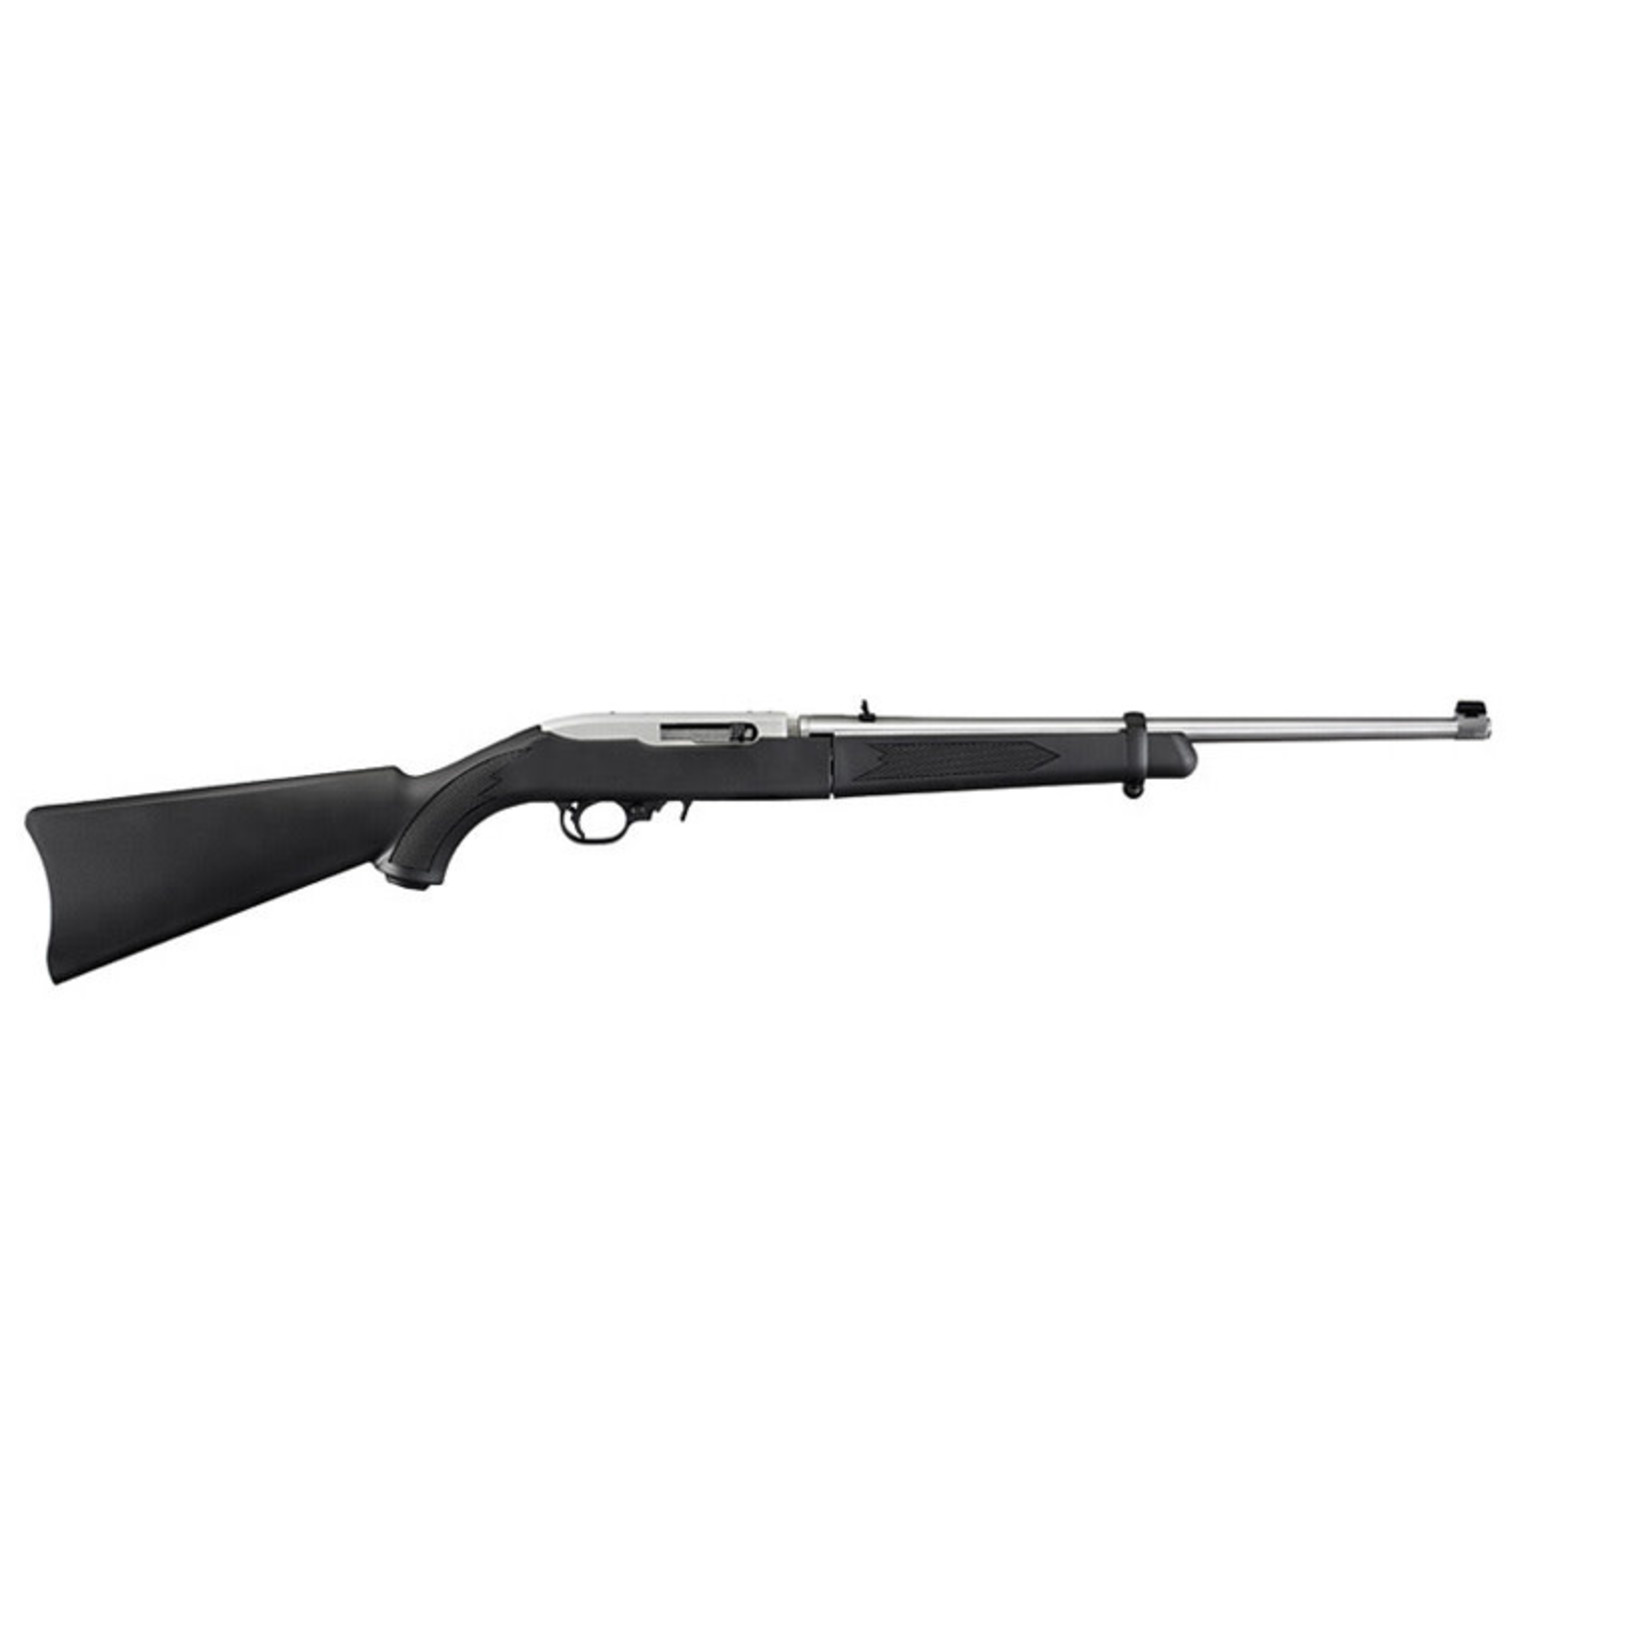 Ruger Ruger 11100 10/22 Takedown Semi Auto Rifle 22 Lr, Rh, 18.5 In